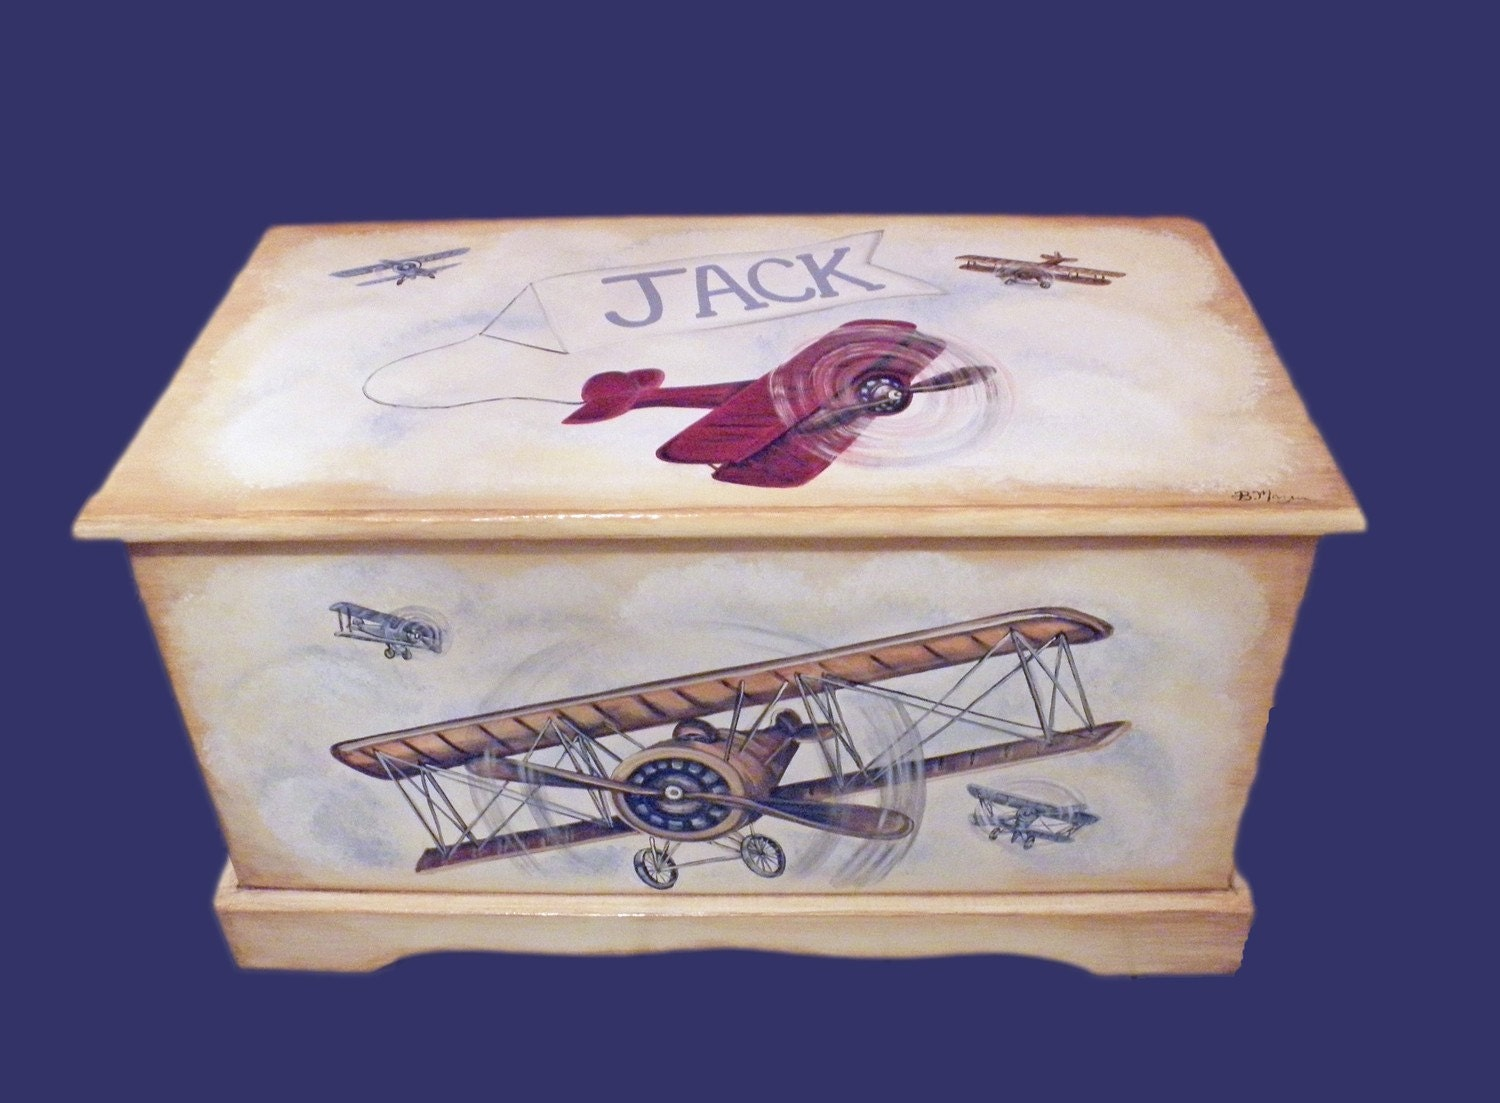 Woodworking airplane toy box plans PDF Free Download